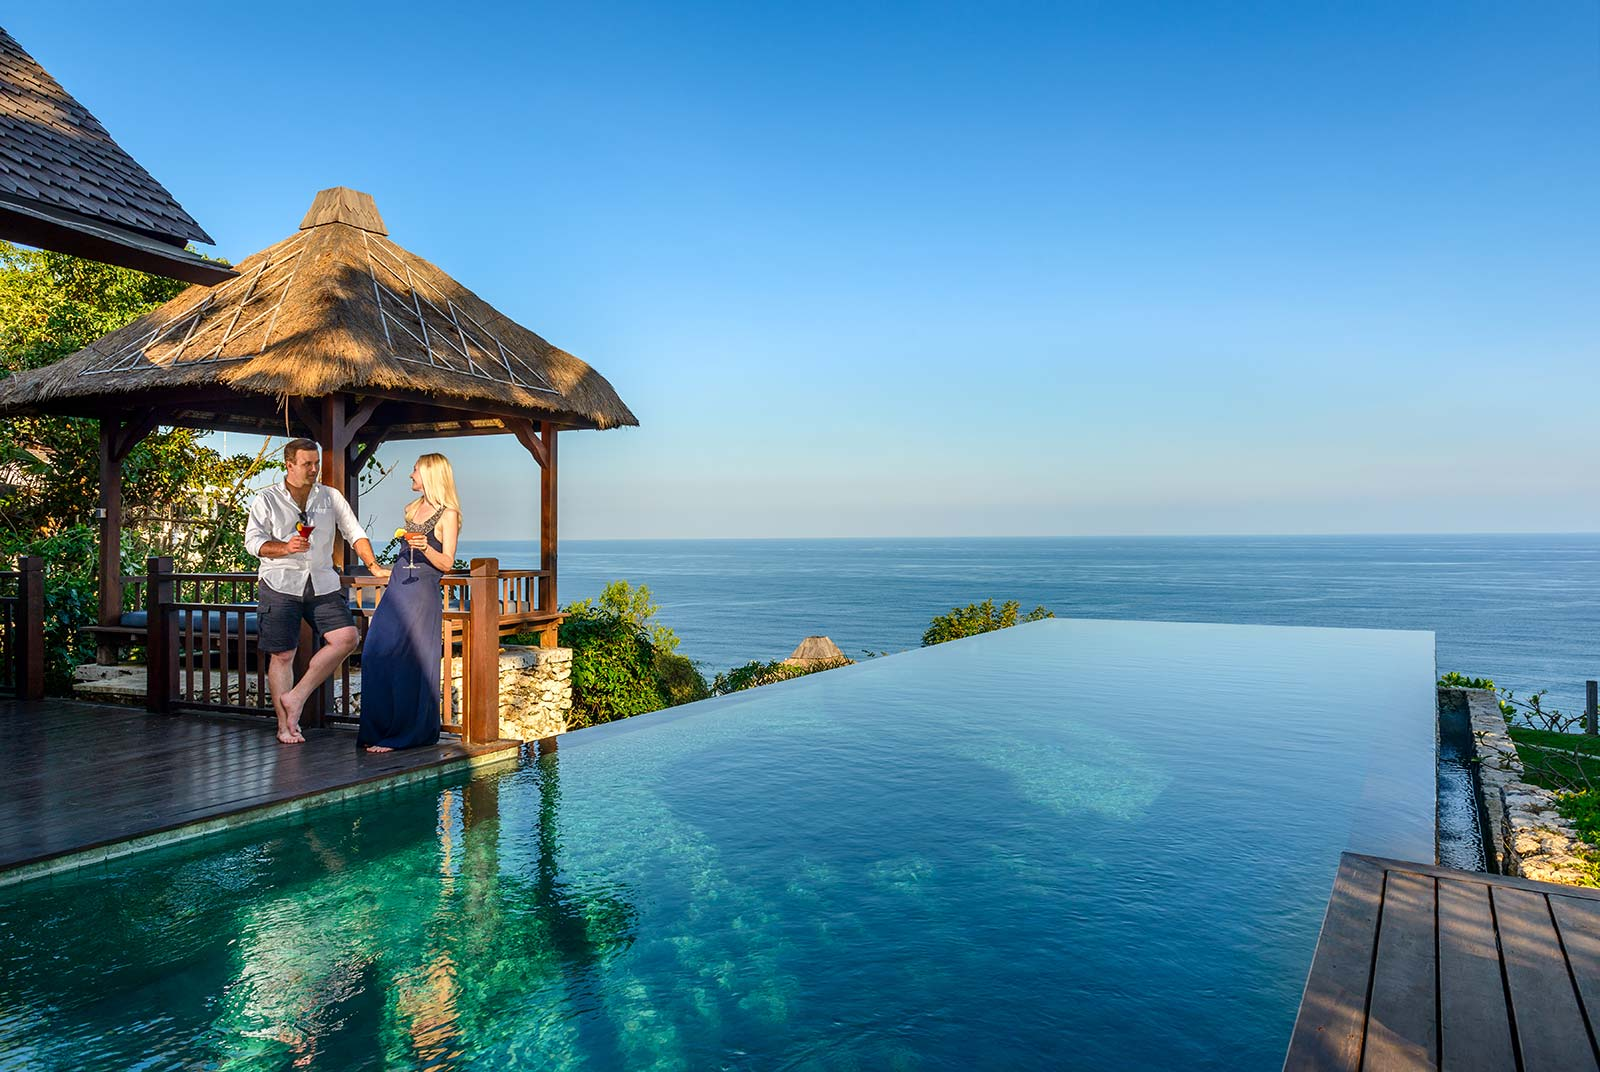 Most Romantic places in World to Celebrate Valentine's Day, BALI